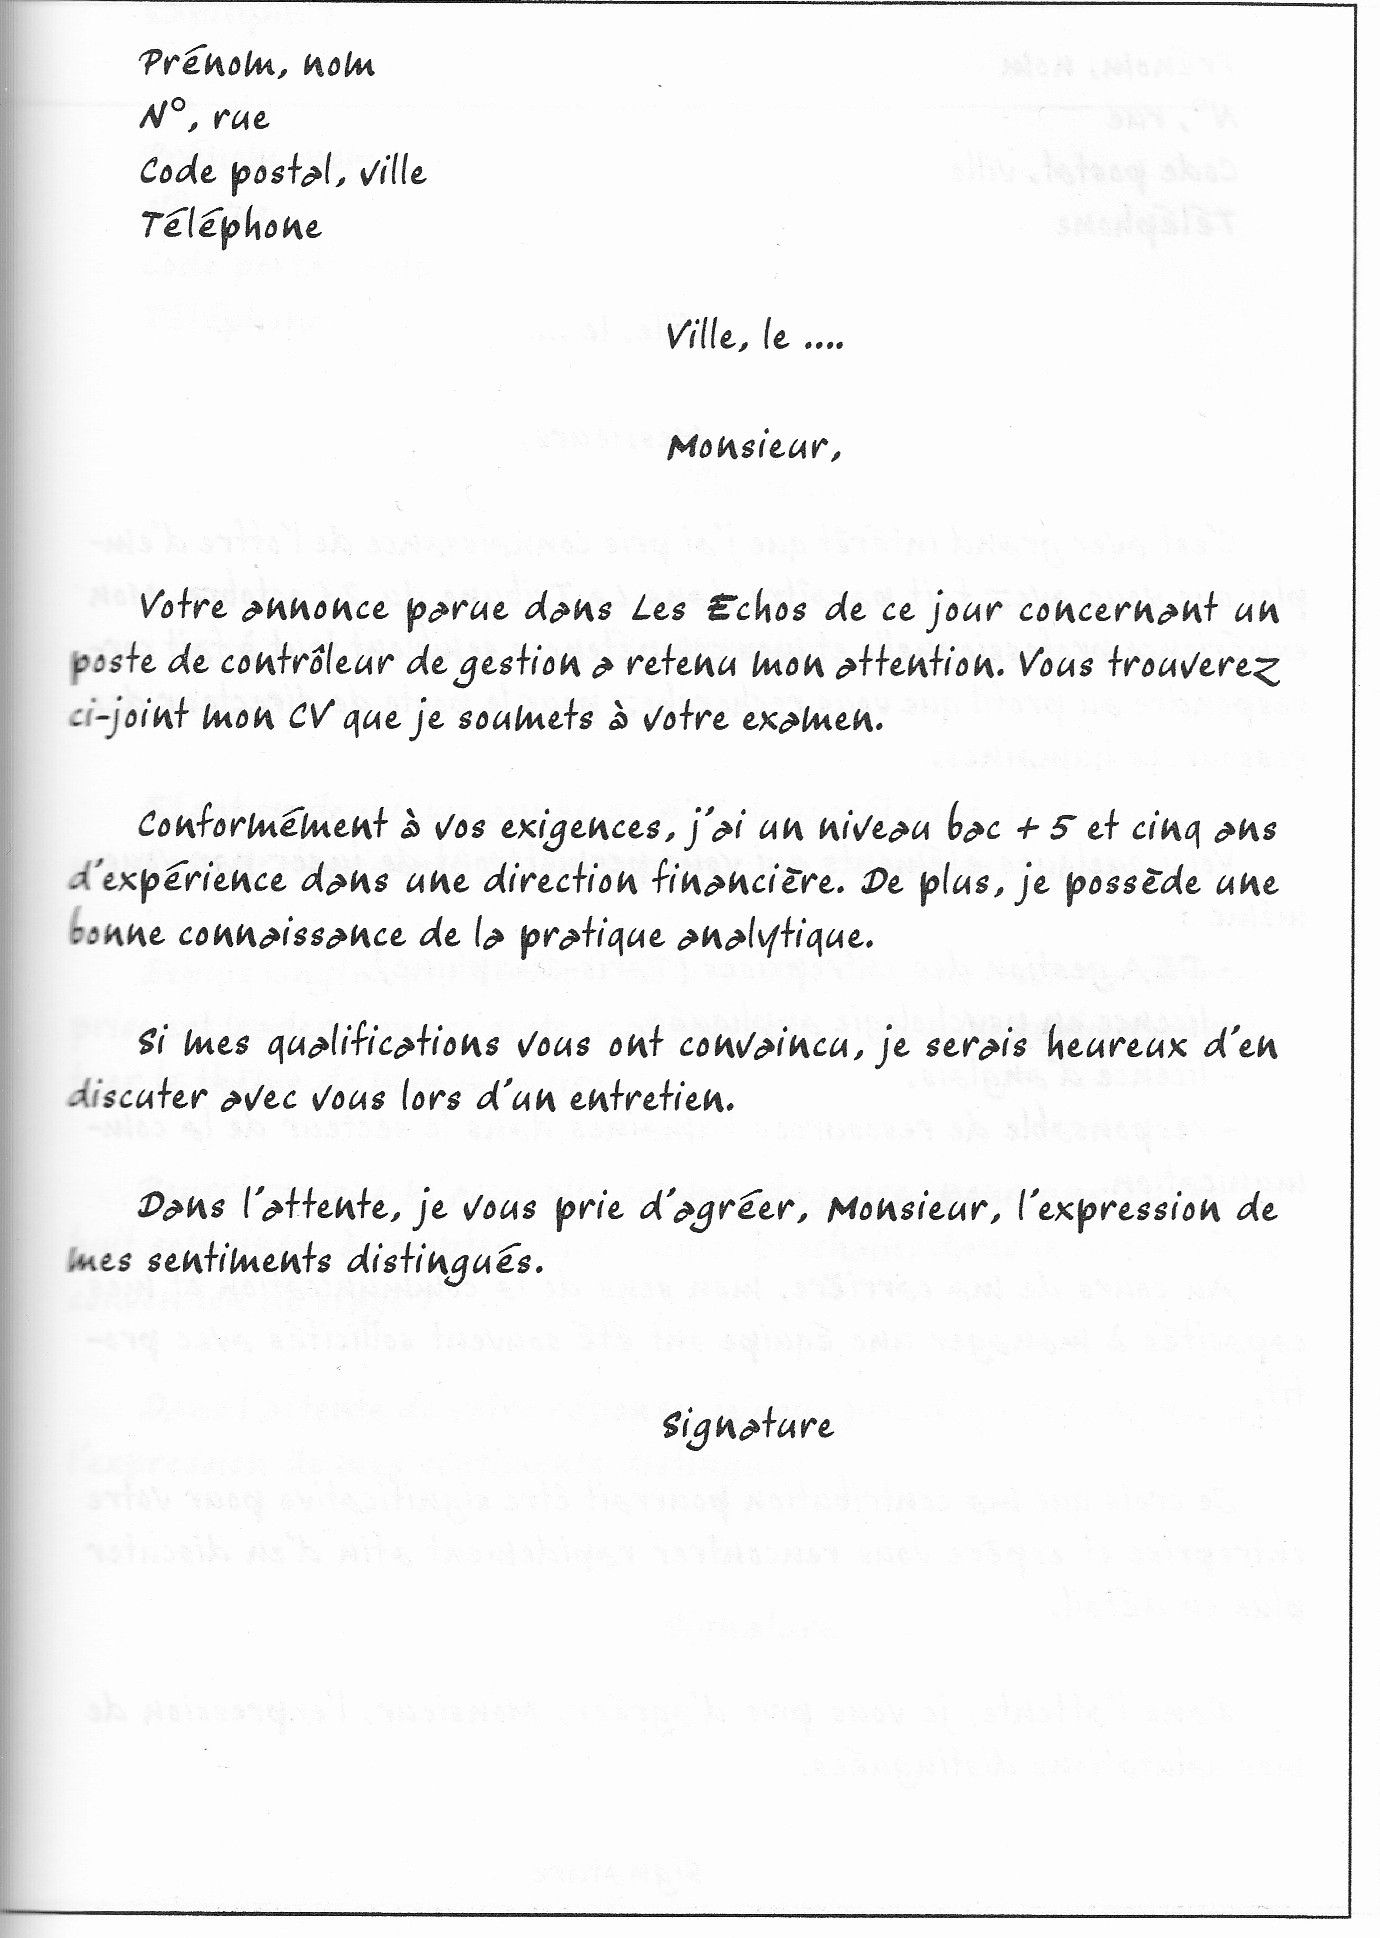 Lovely Lettre De Motivation Leroy Merlin Etudiant Lettre De